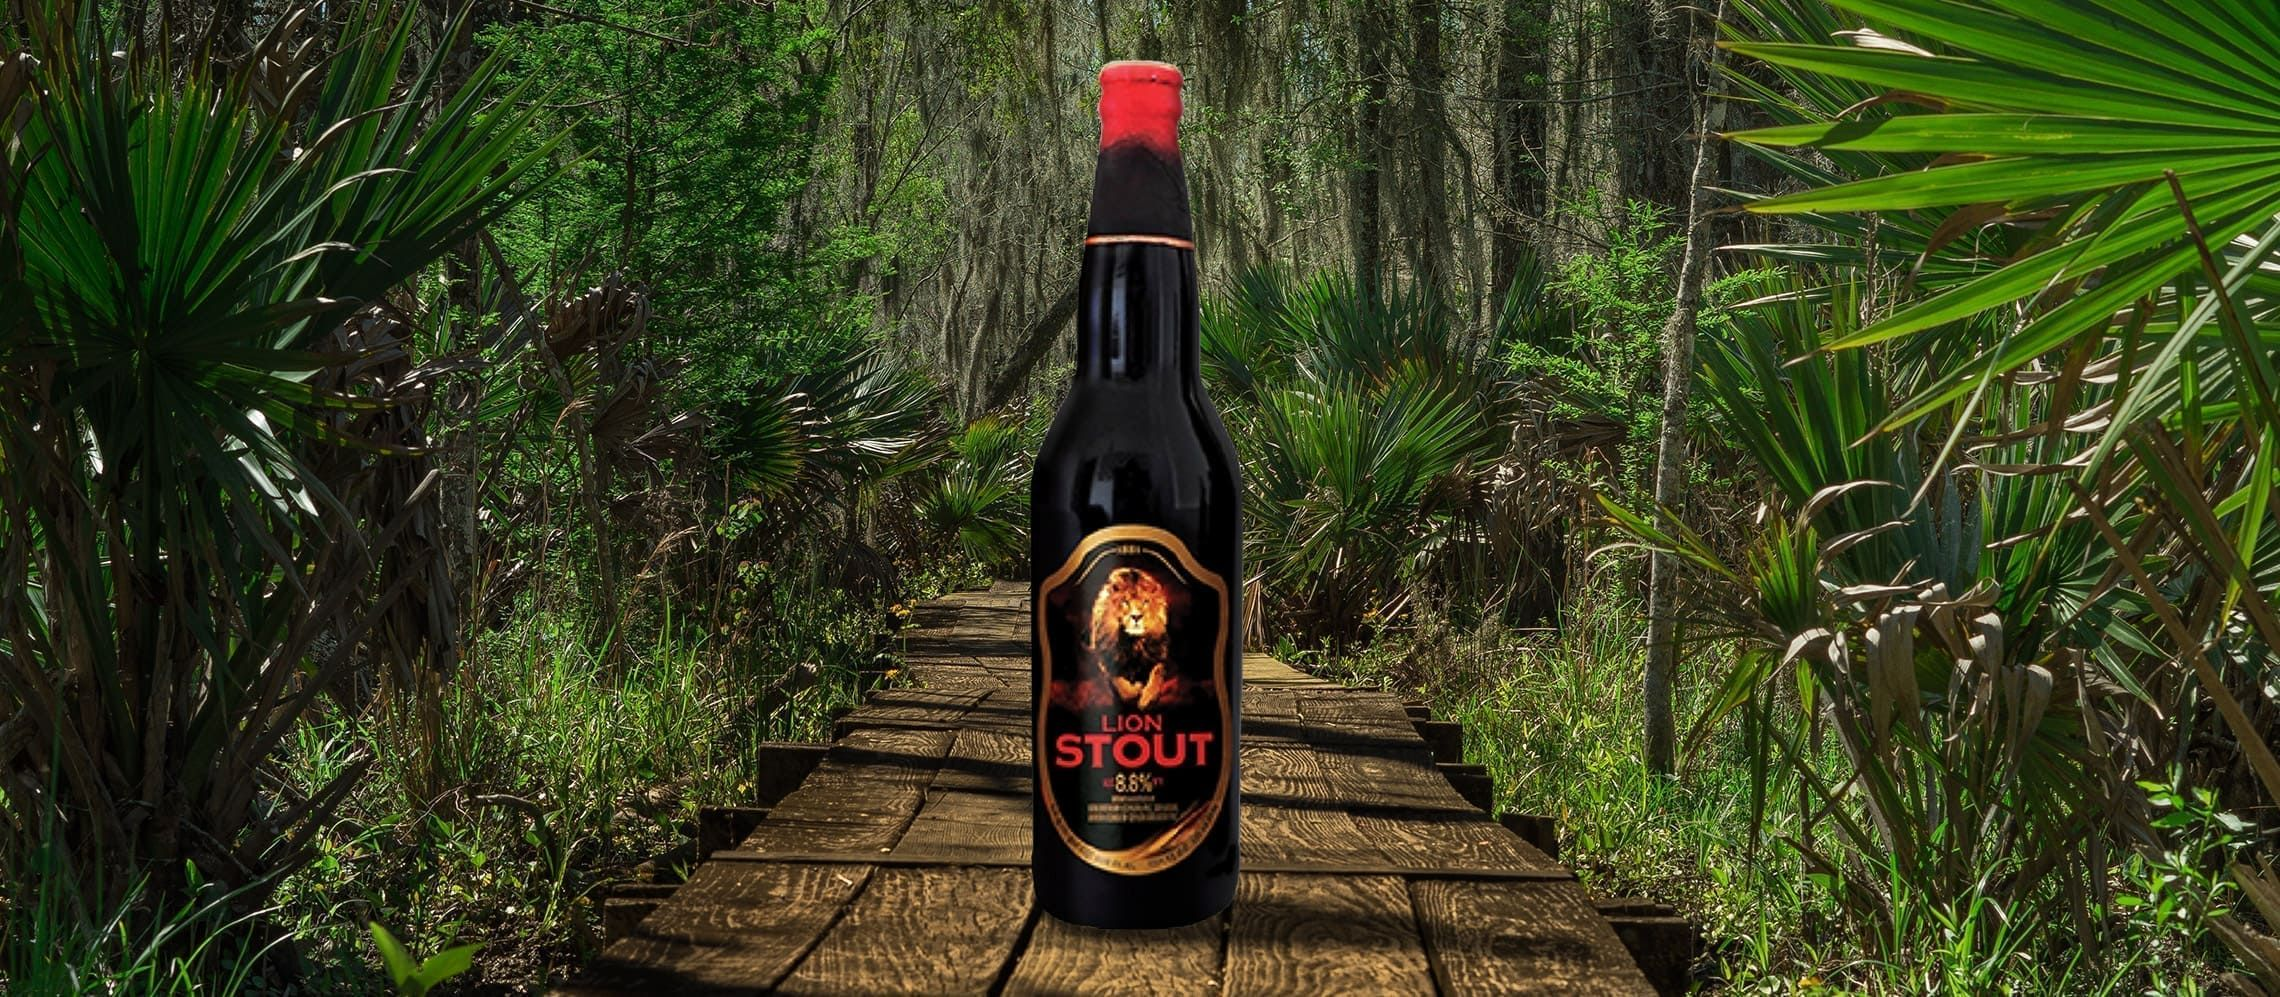 Photo for: Lion Brewery's Beer Lion Stout Garners Success